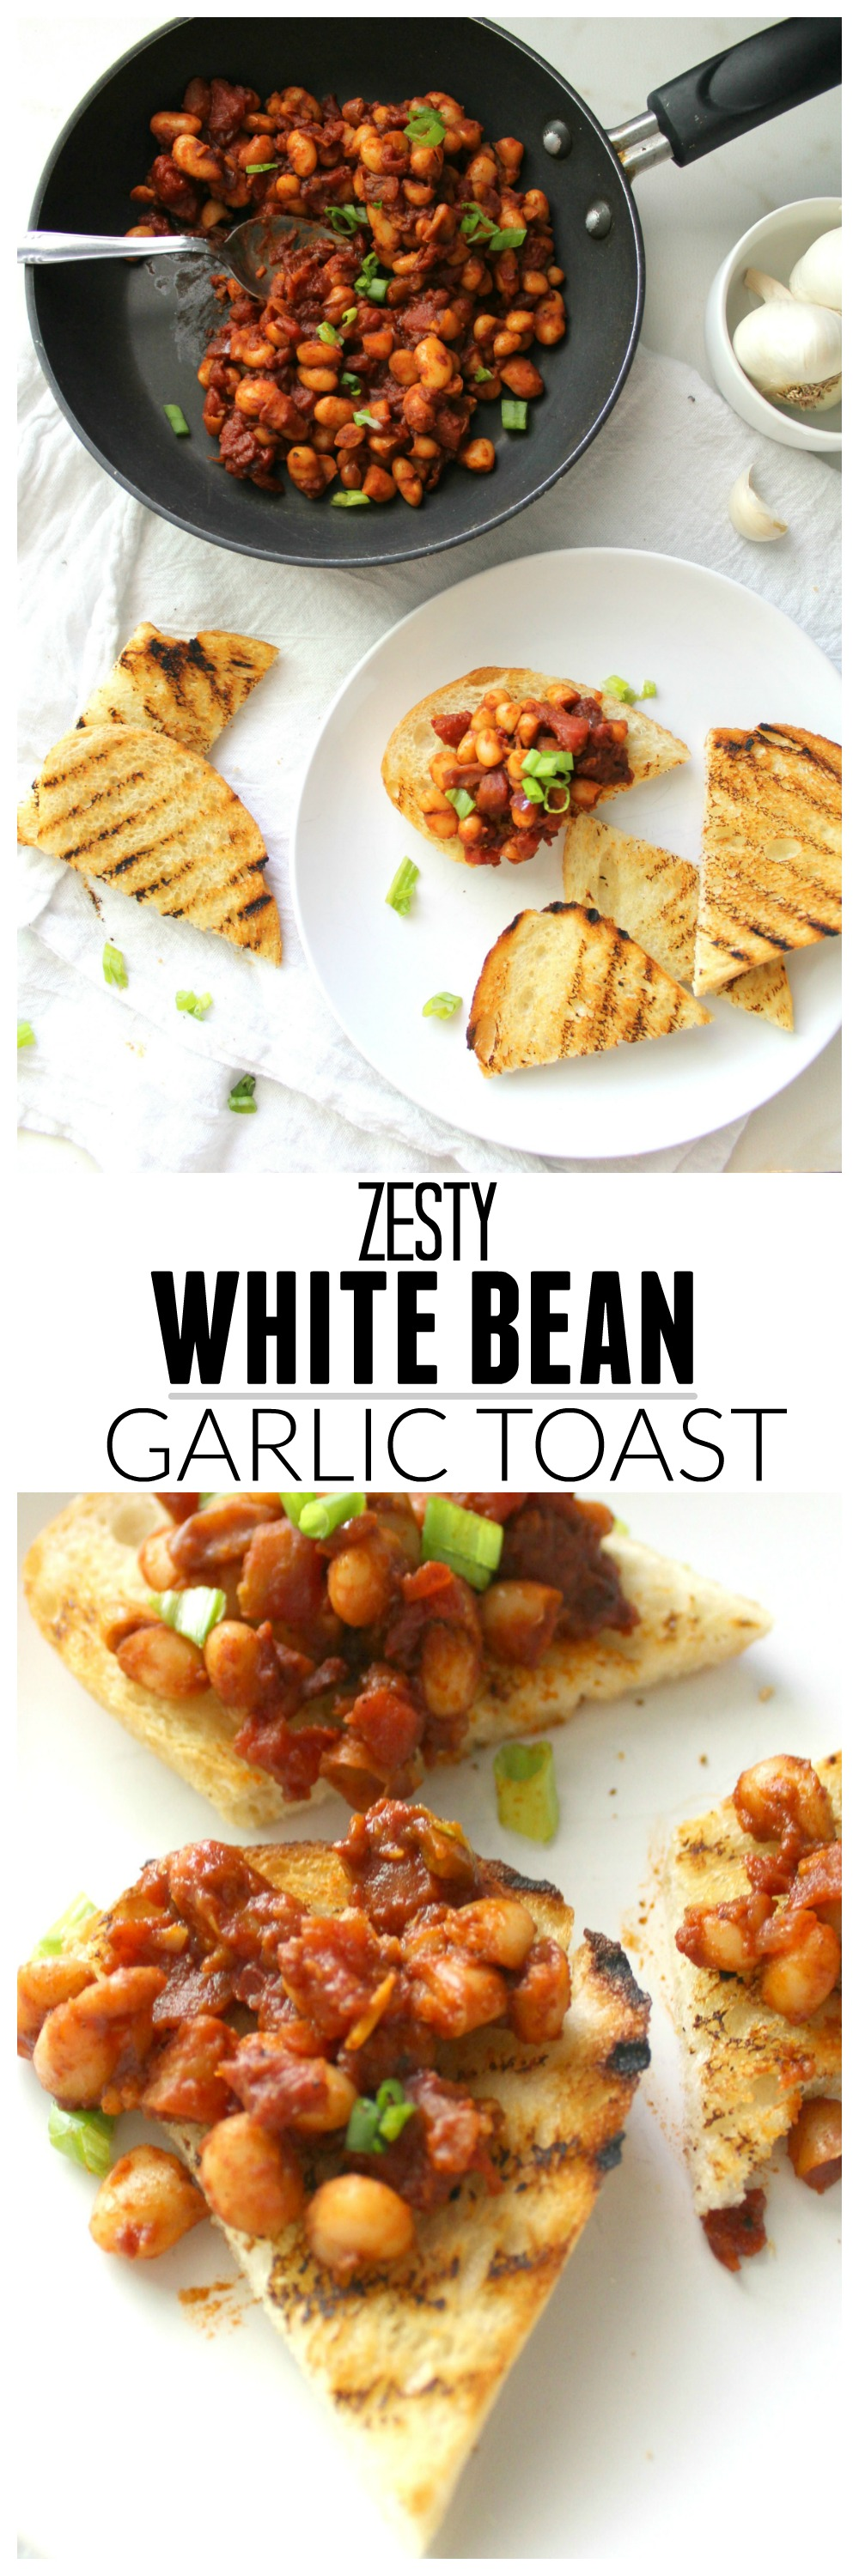 Perfect for breakfast, brunch or a snack, this Zesty White Bean Garlic Toast takes less than 15 minutes and is a filling and healthy choice | ThisSavoryVegan.com